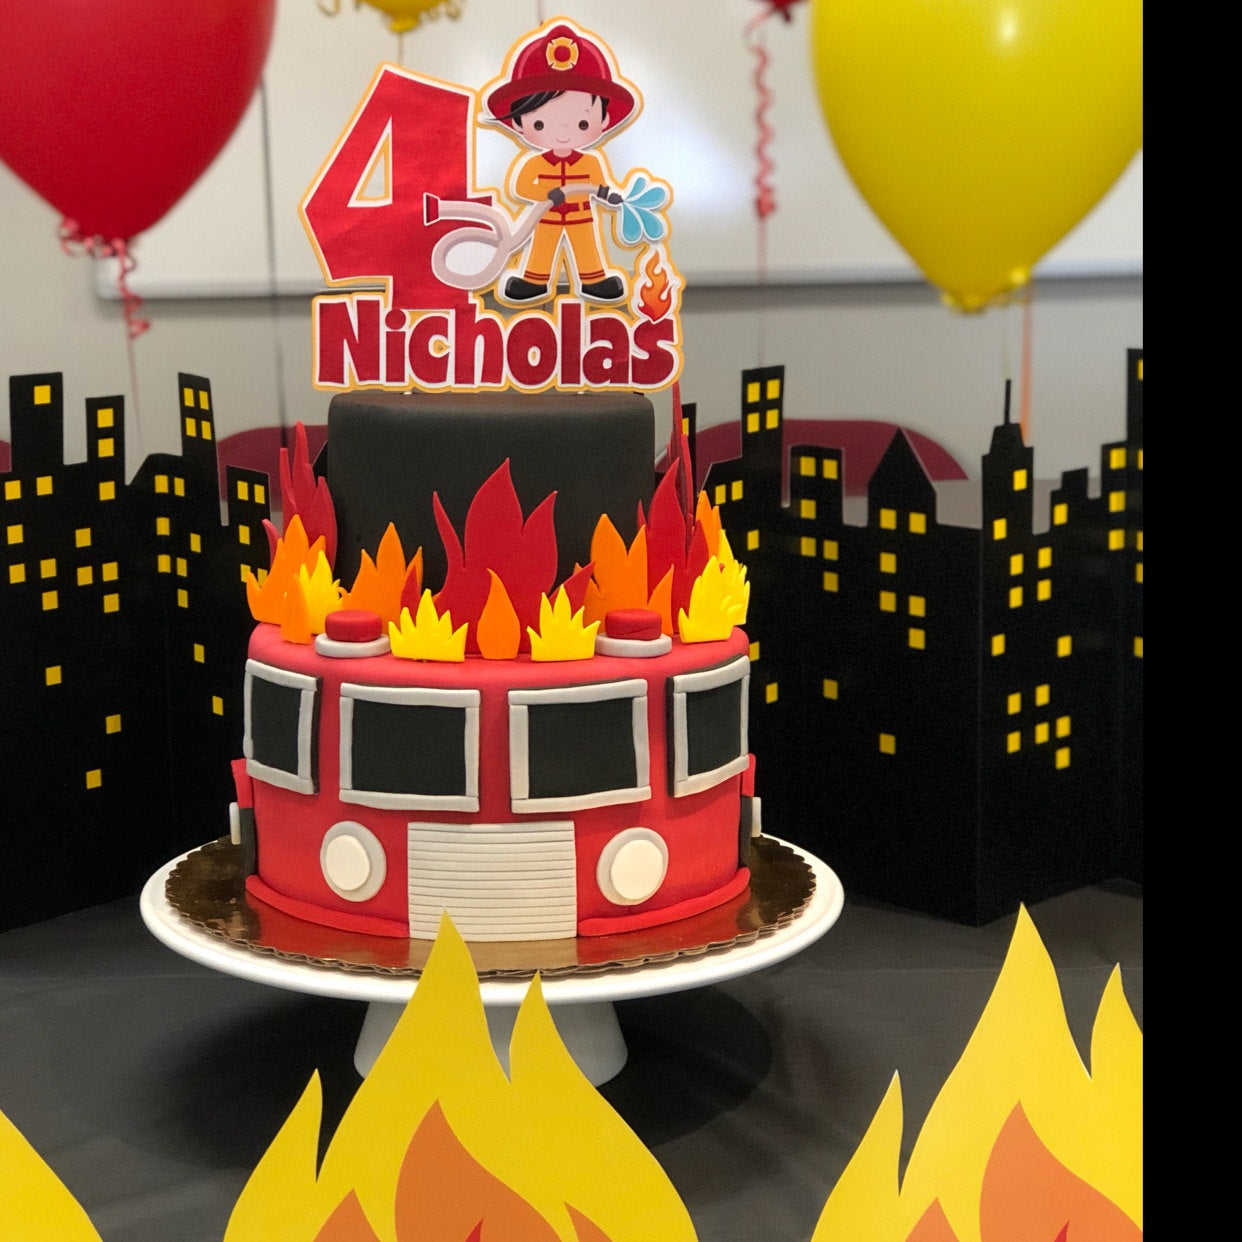 Marvelous Fireman Cake Topper Fire Fighter Cake Topper Fireman Party Funny Birthday Cards Online Alyptdamsfinfo